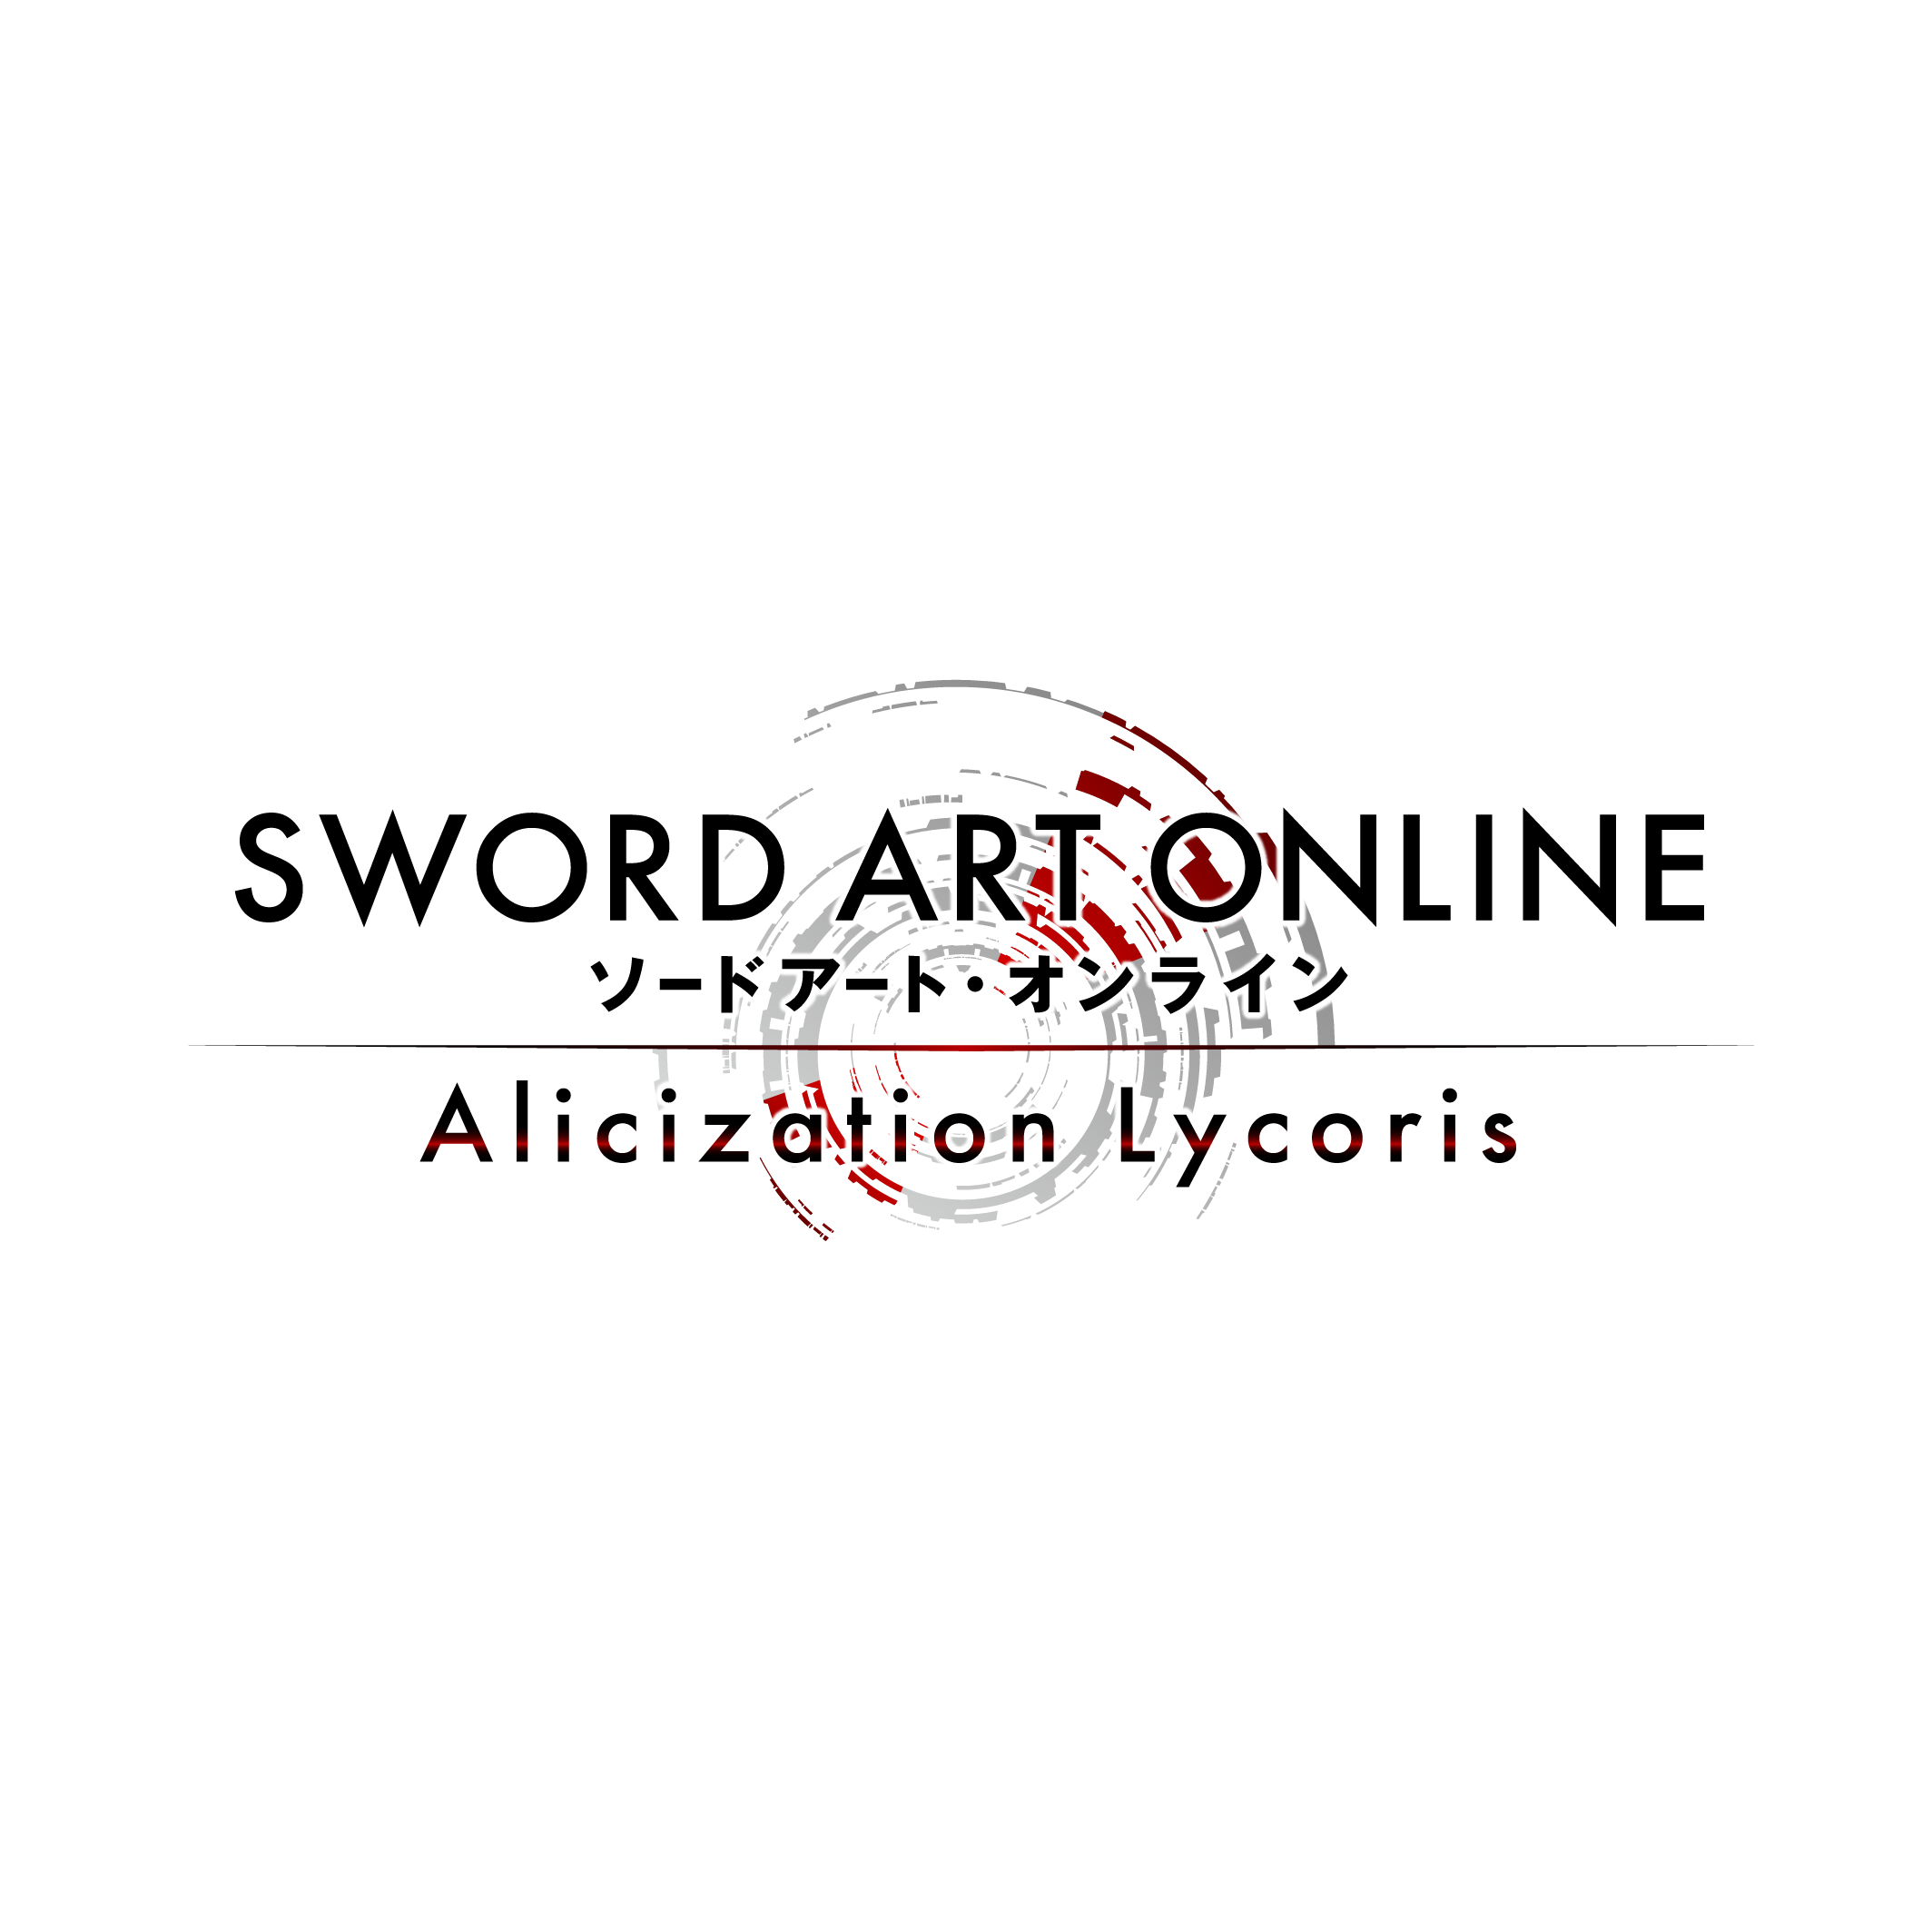 Sword Art Online: Alicization Lycoris aangekondigd